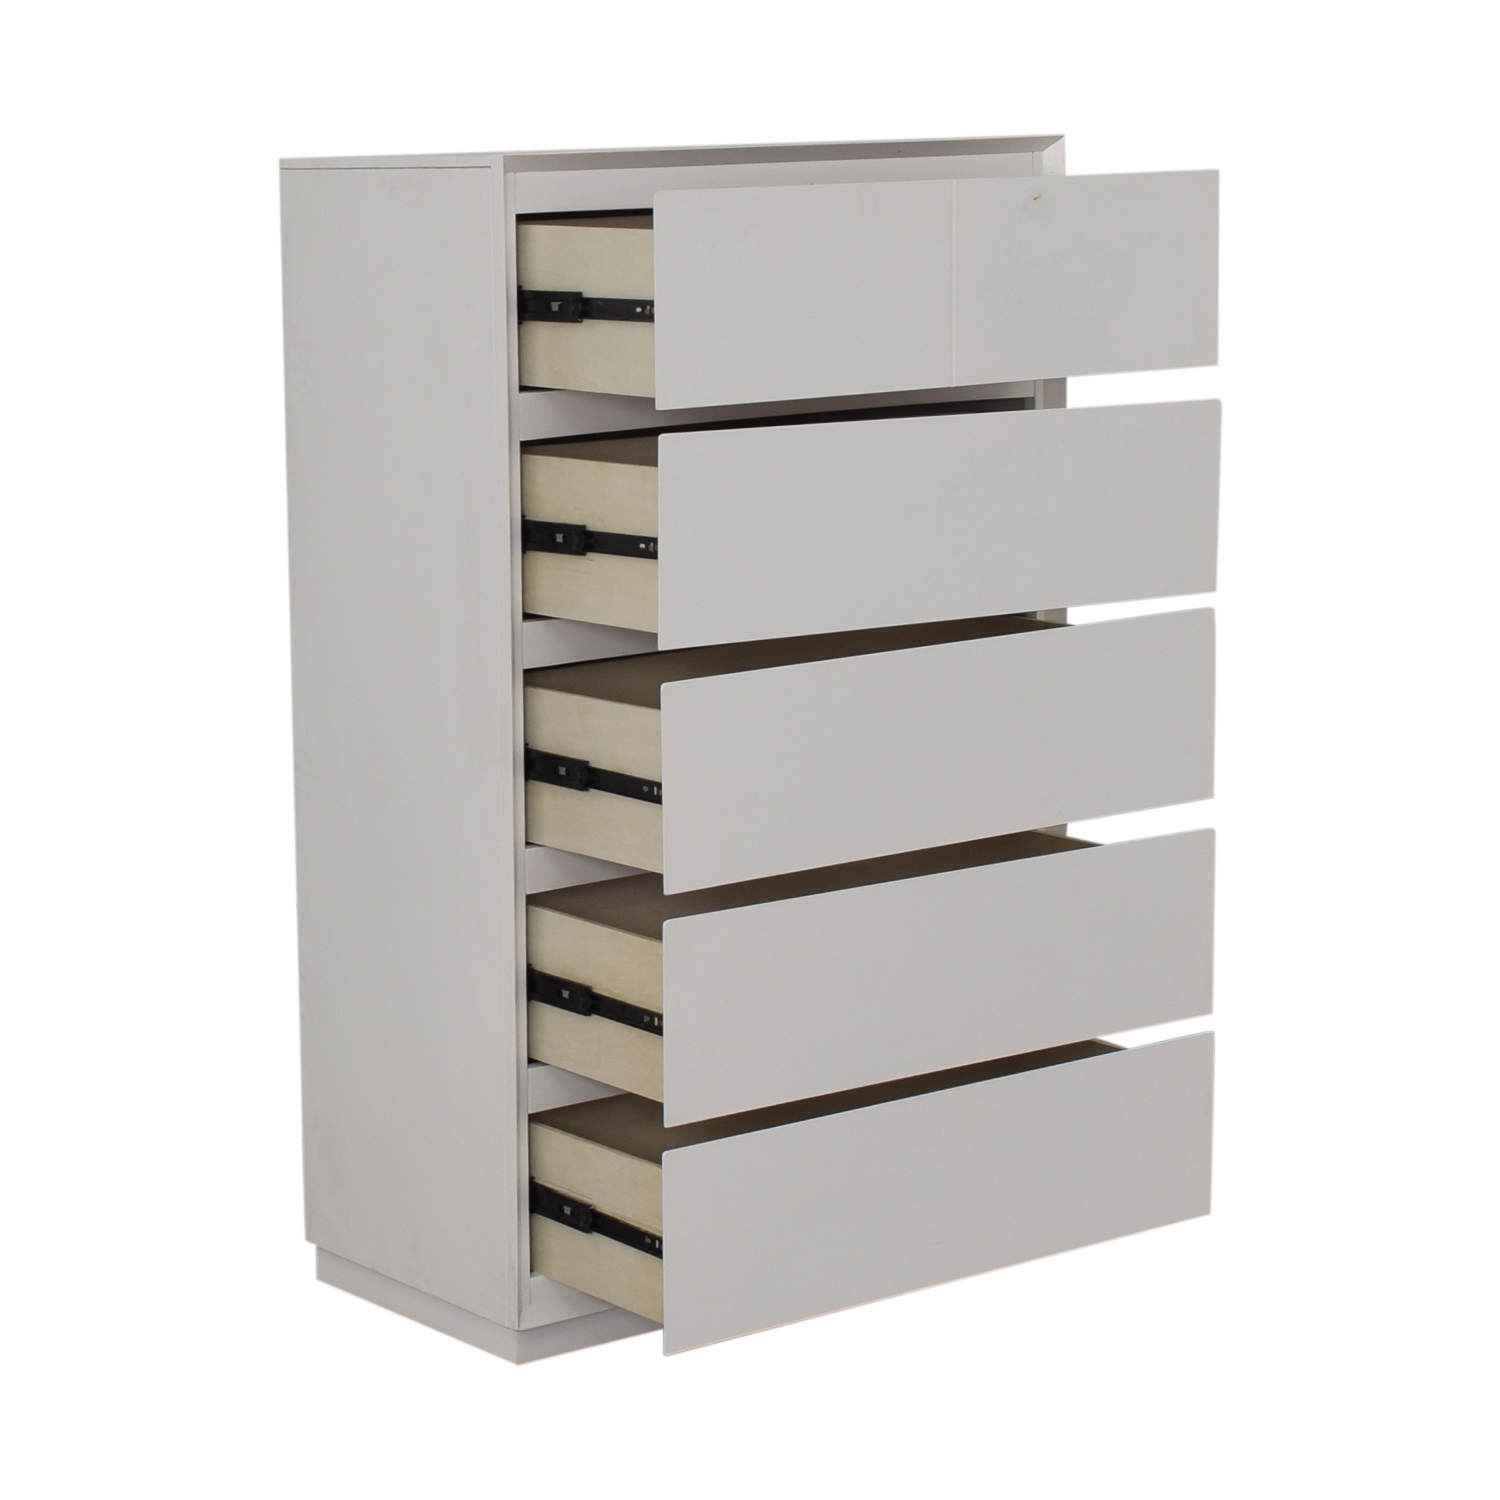 Furniture of America Leeroy Chest of Drawers Furniture of America